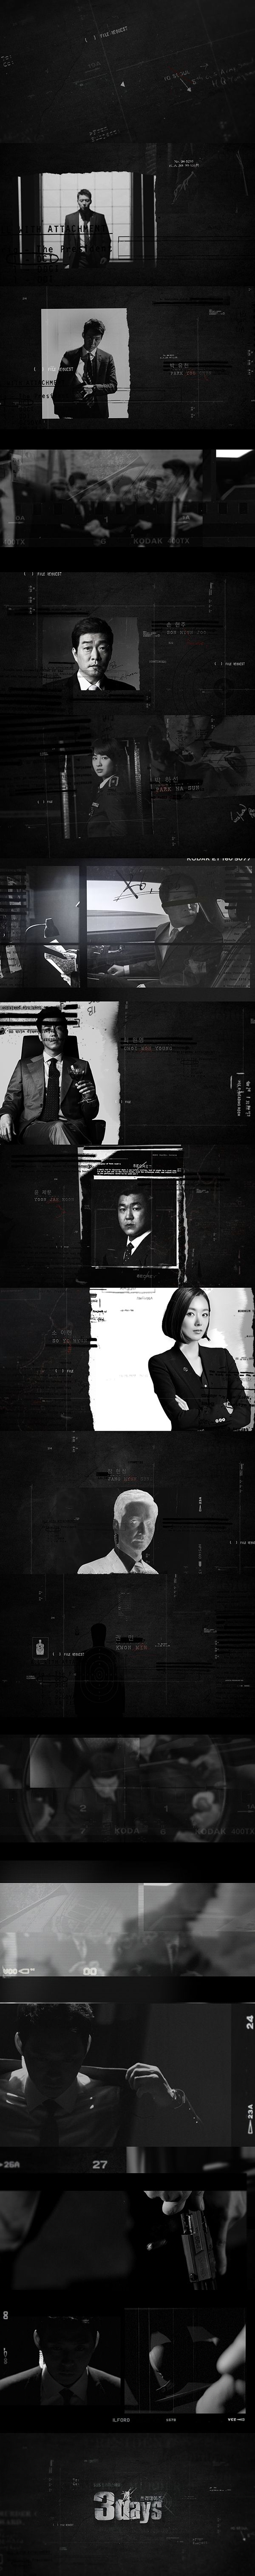 motion graphics/ storyboards/ styleframes | '3Days'( 쓰리데이즈 ) Opening Title